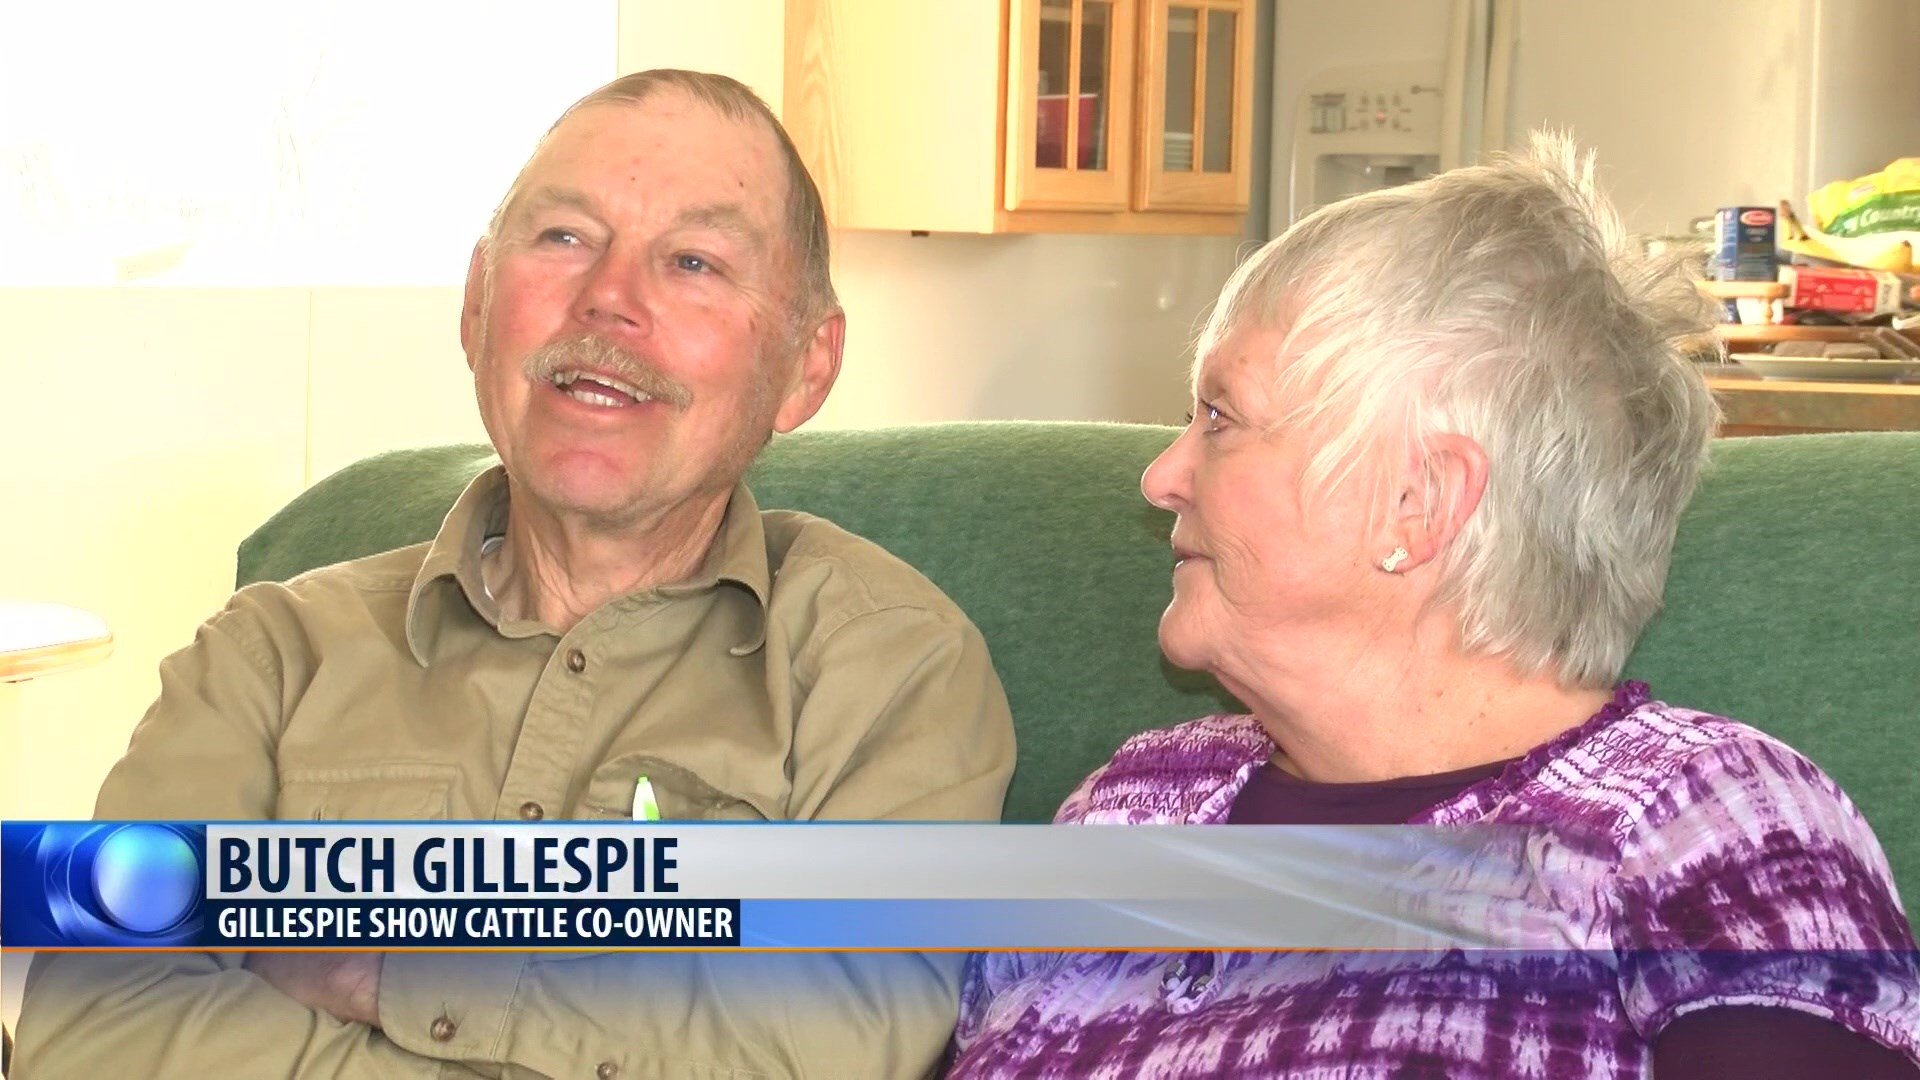 Butch andDoreen Gillespie, owners of Gillespie Show Cattle, have been cattle ranching on 'Revolution Ranch' near Kevin for 40 years.